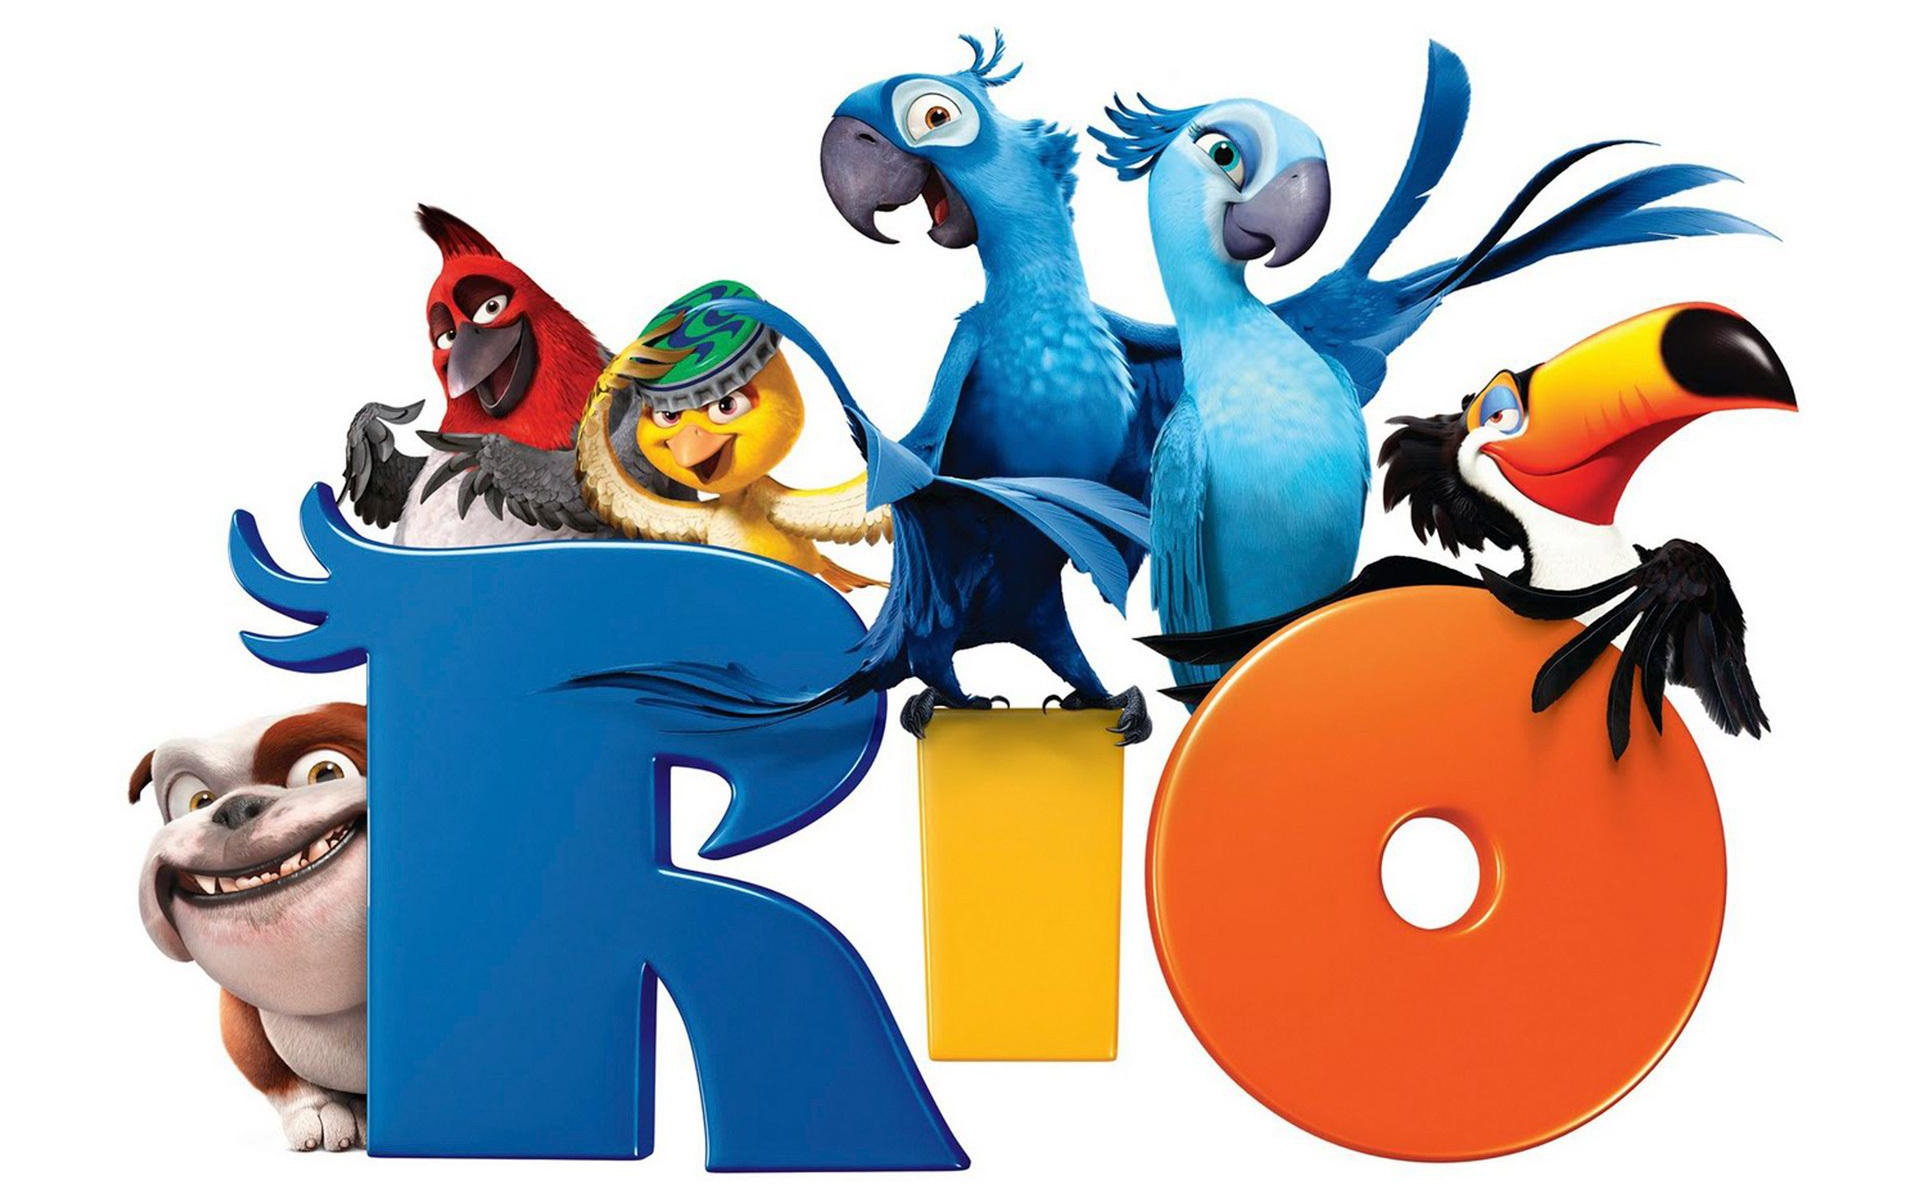 rio-cartoon-movie_1920x1200